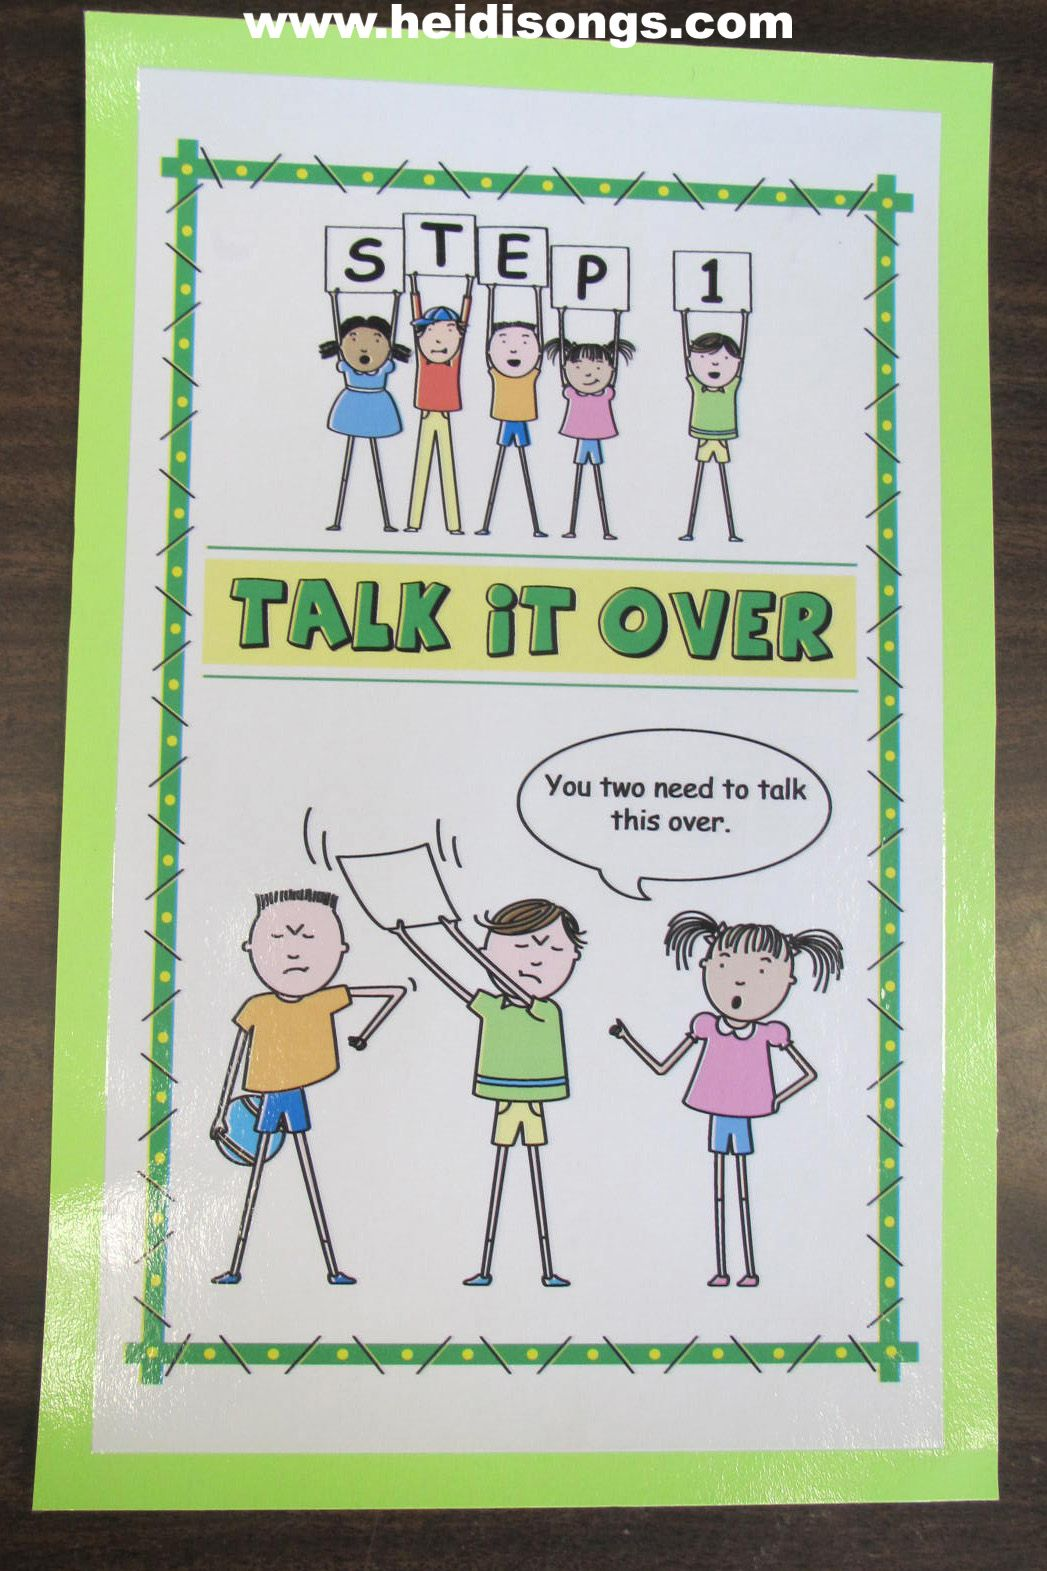 Social Skills Problem Solving Heidisongs Resource